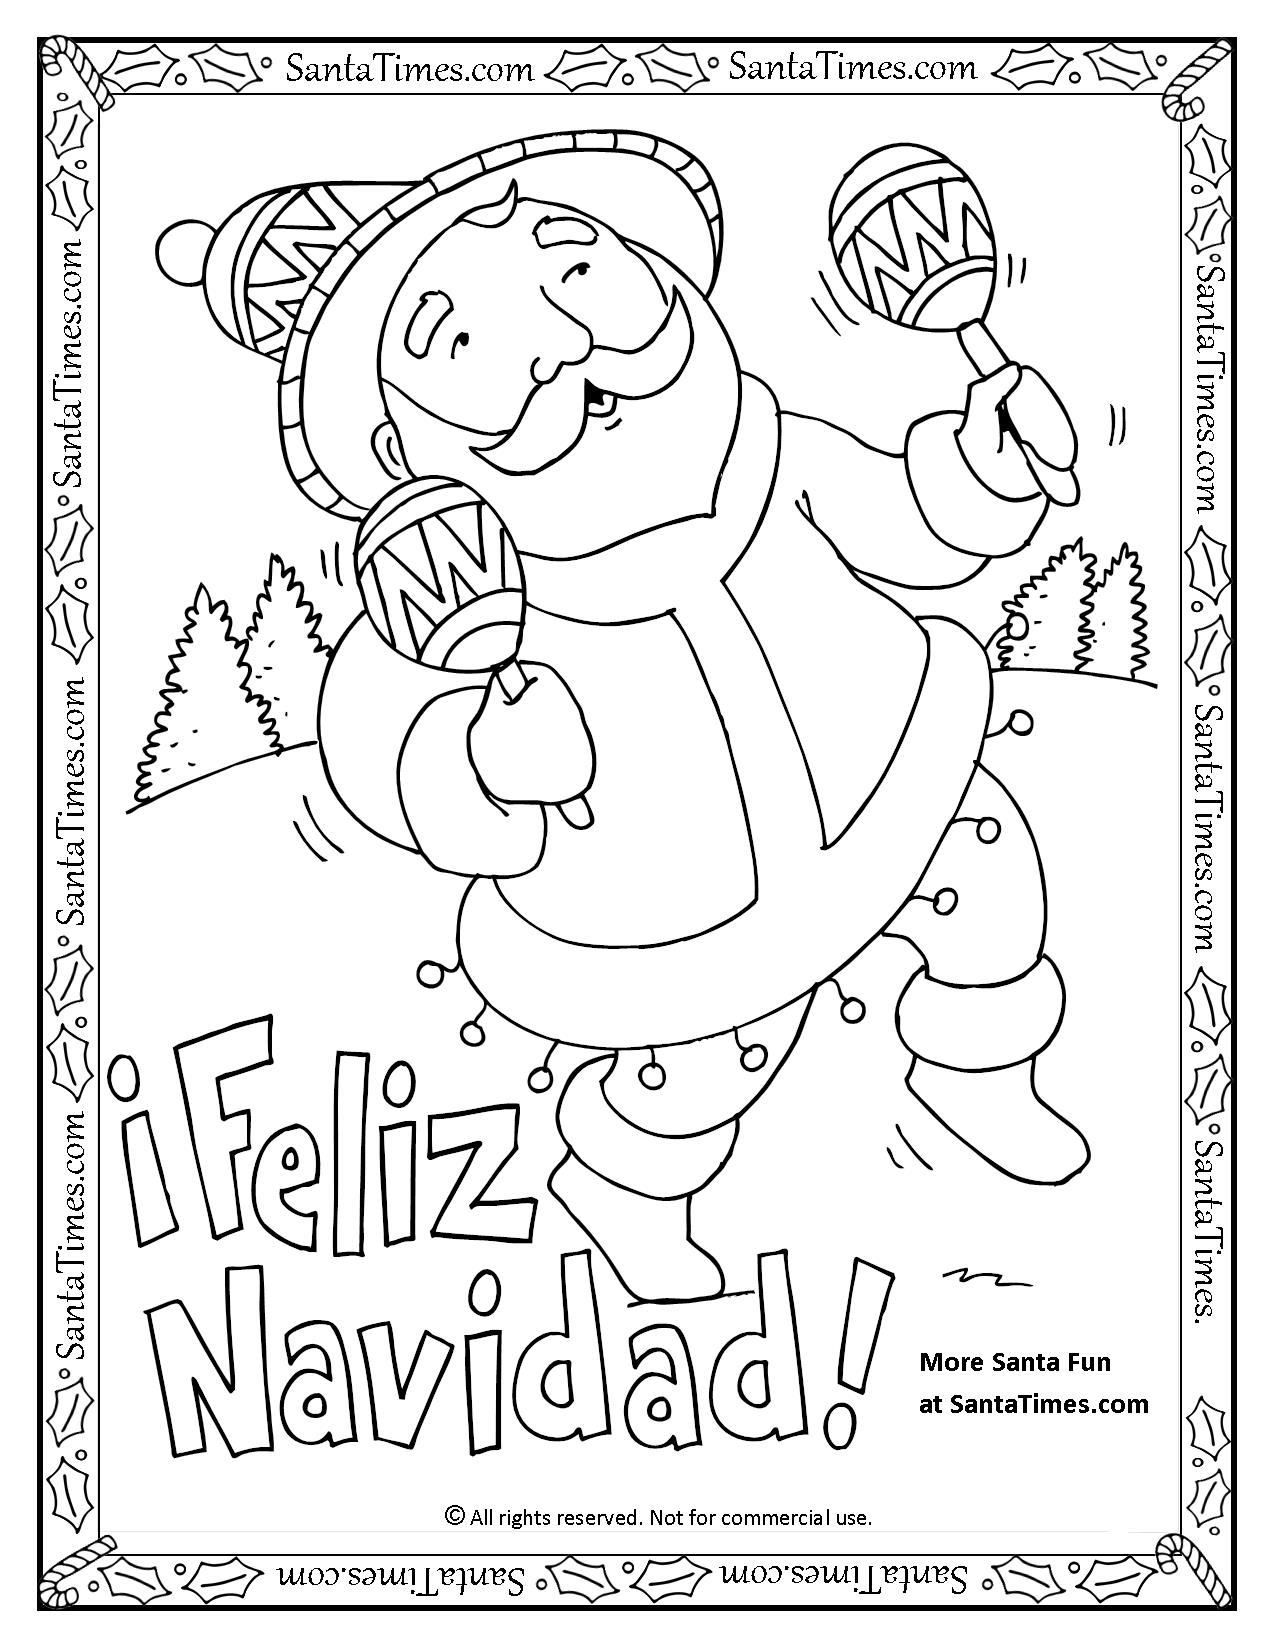 Feliz navidad printable coloring page for Christmas coloring pages spanish